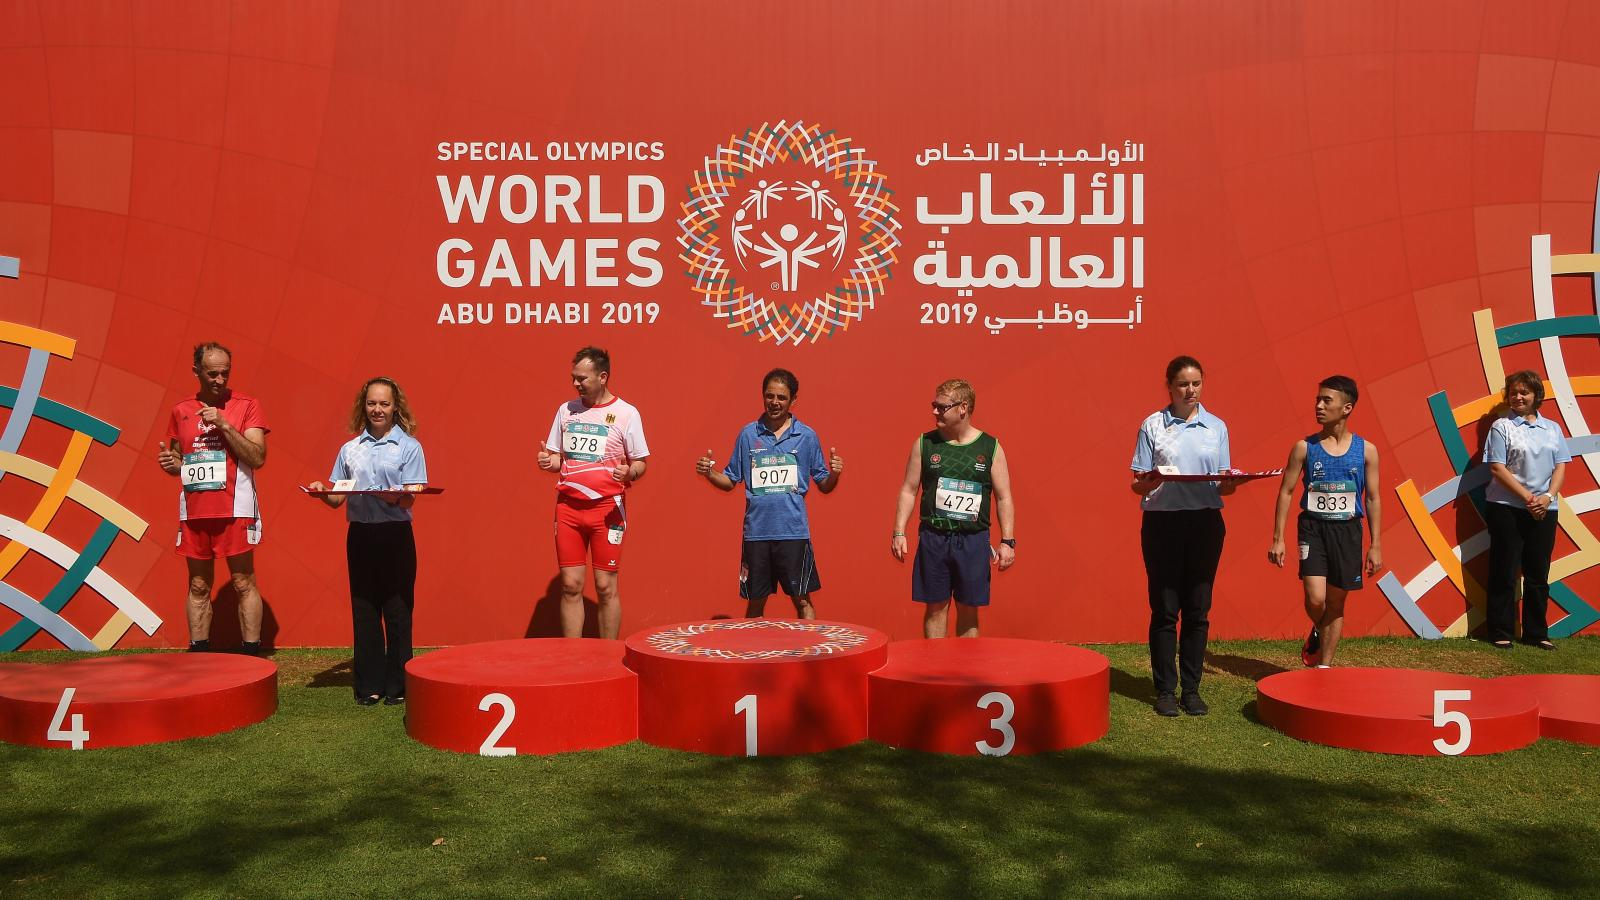 Athletes standing in front of presentation podium prior to medal presentation at World Games